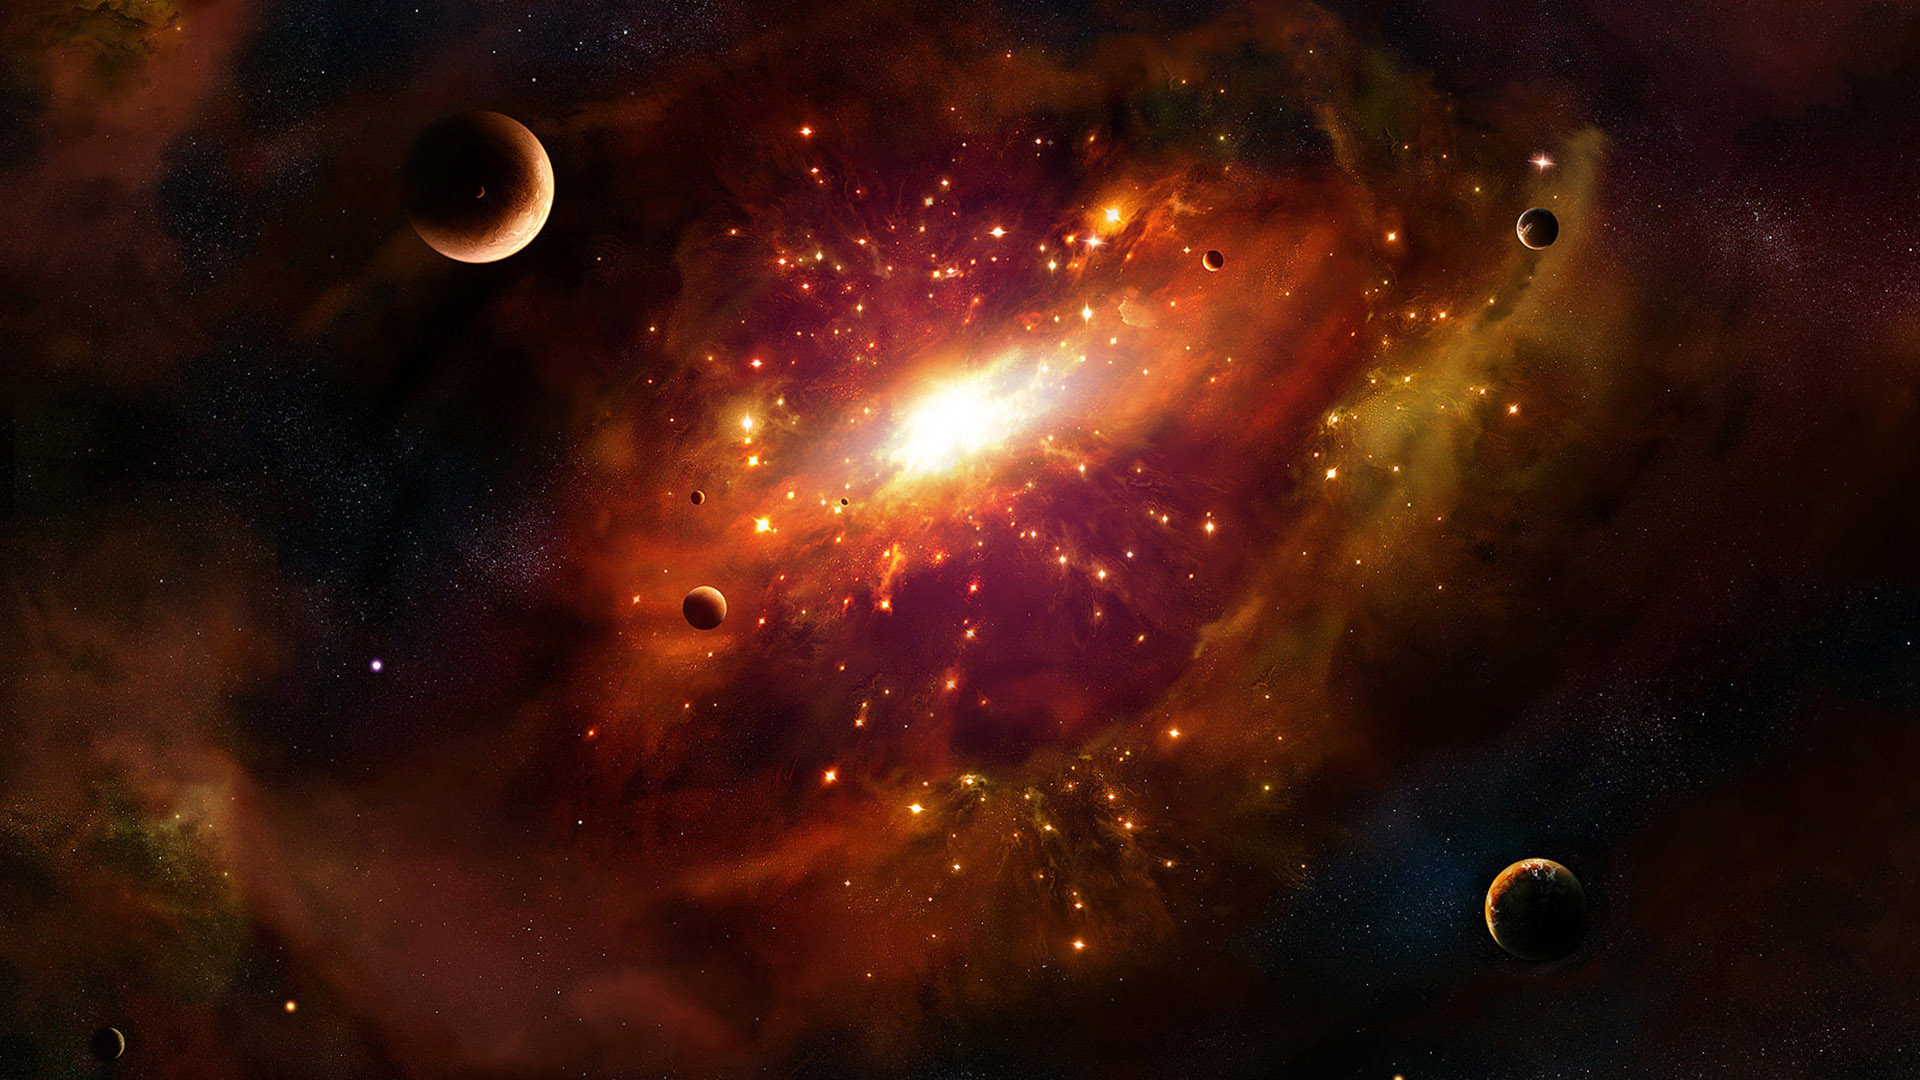 Space Wallpaper For Walls Space Wallpapers Best Wallpapers